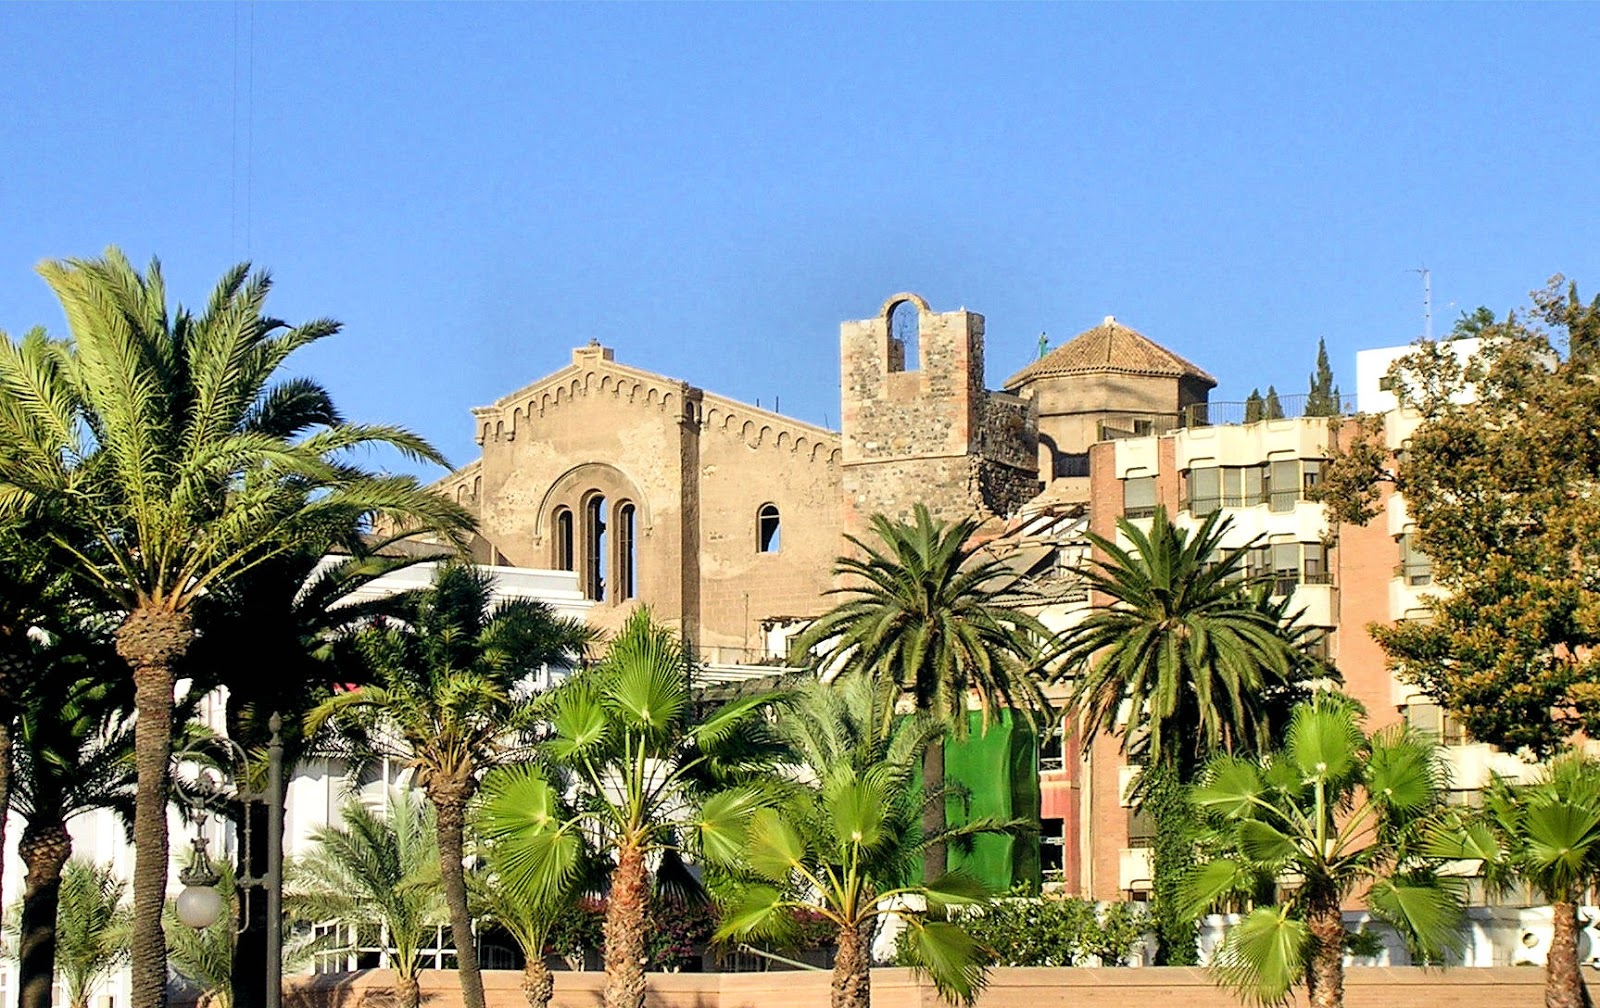 The 13th-century cathedral of Santa María la Vieja. Photo: Ventimiglia, WikiMedia.org.